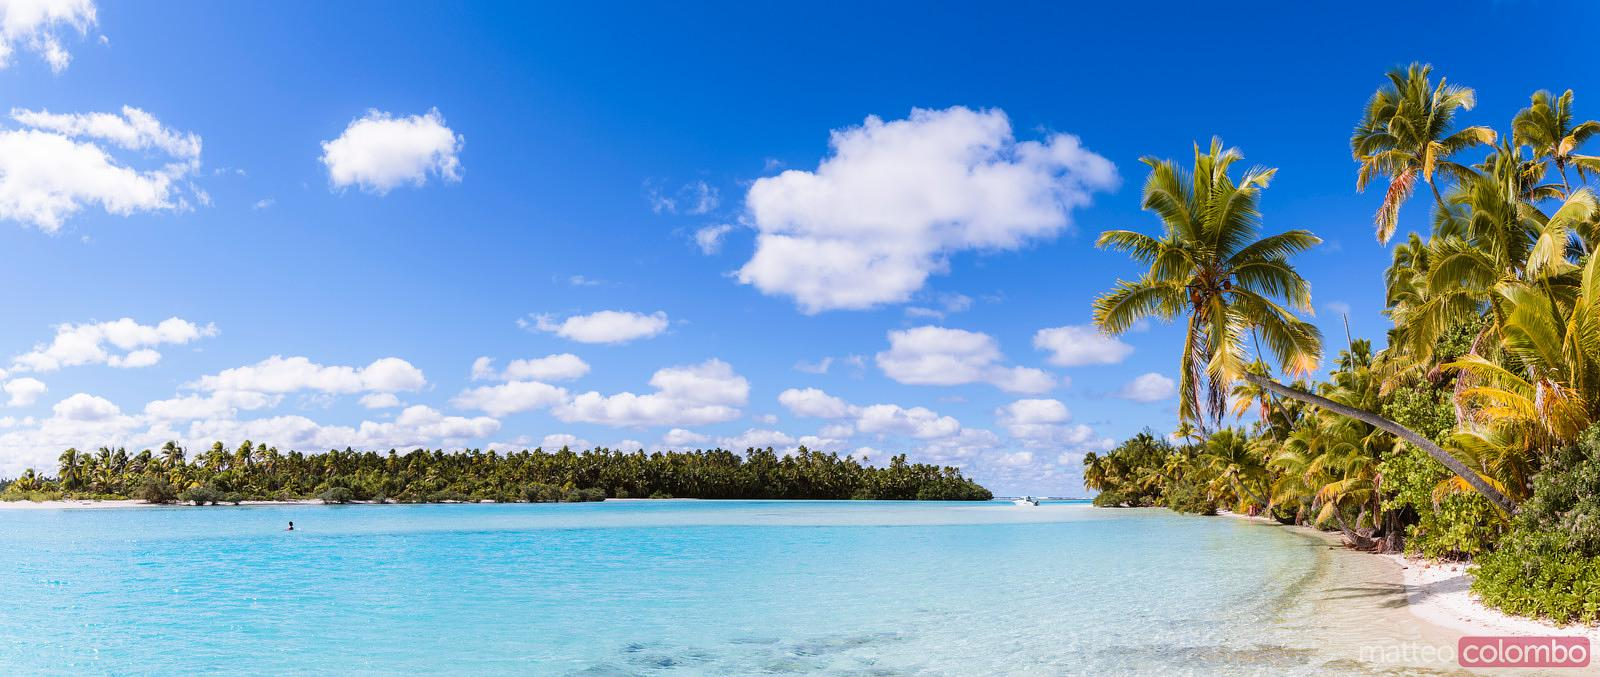 matteo colombo travel photography one foot island panoramic aitutaki cook islands stock. Black Bedroom Furniture Sets. Home Design Ideas